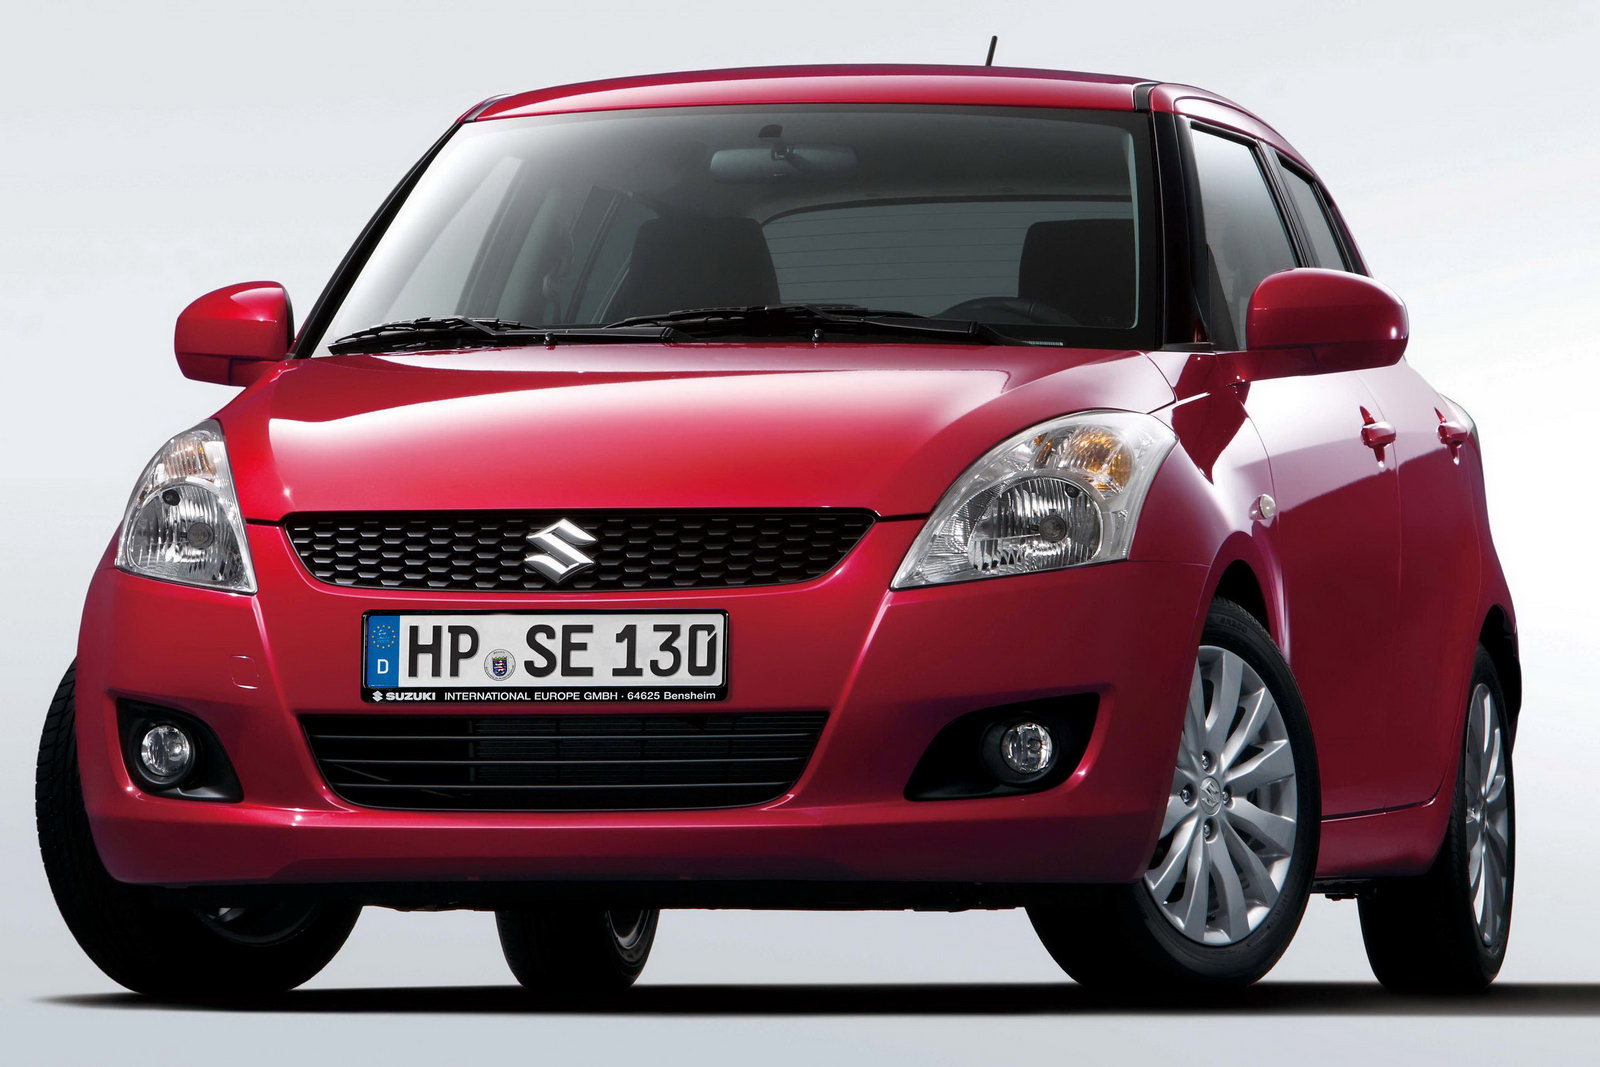 new suzuki swift breaks cover no really it 39 s a completely new model. Black Bedroom Furniture Sets. Home Design Ideas